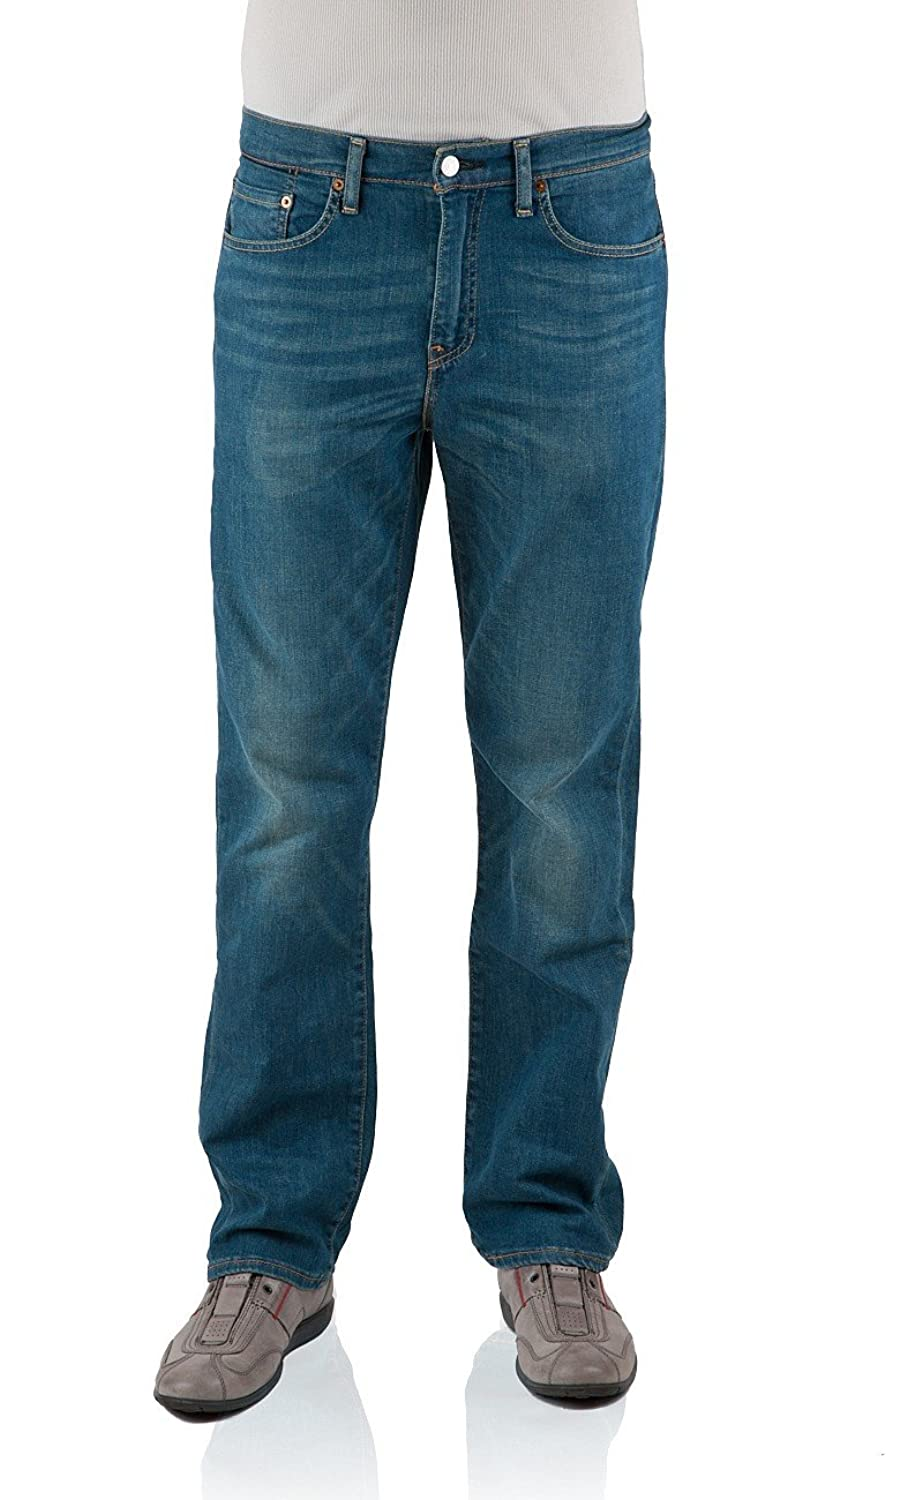 Levi's apos;s Men's 751 Standard Fit Straight Fit Jeans - -: Amazon.co.uk:  Clothing